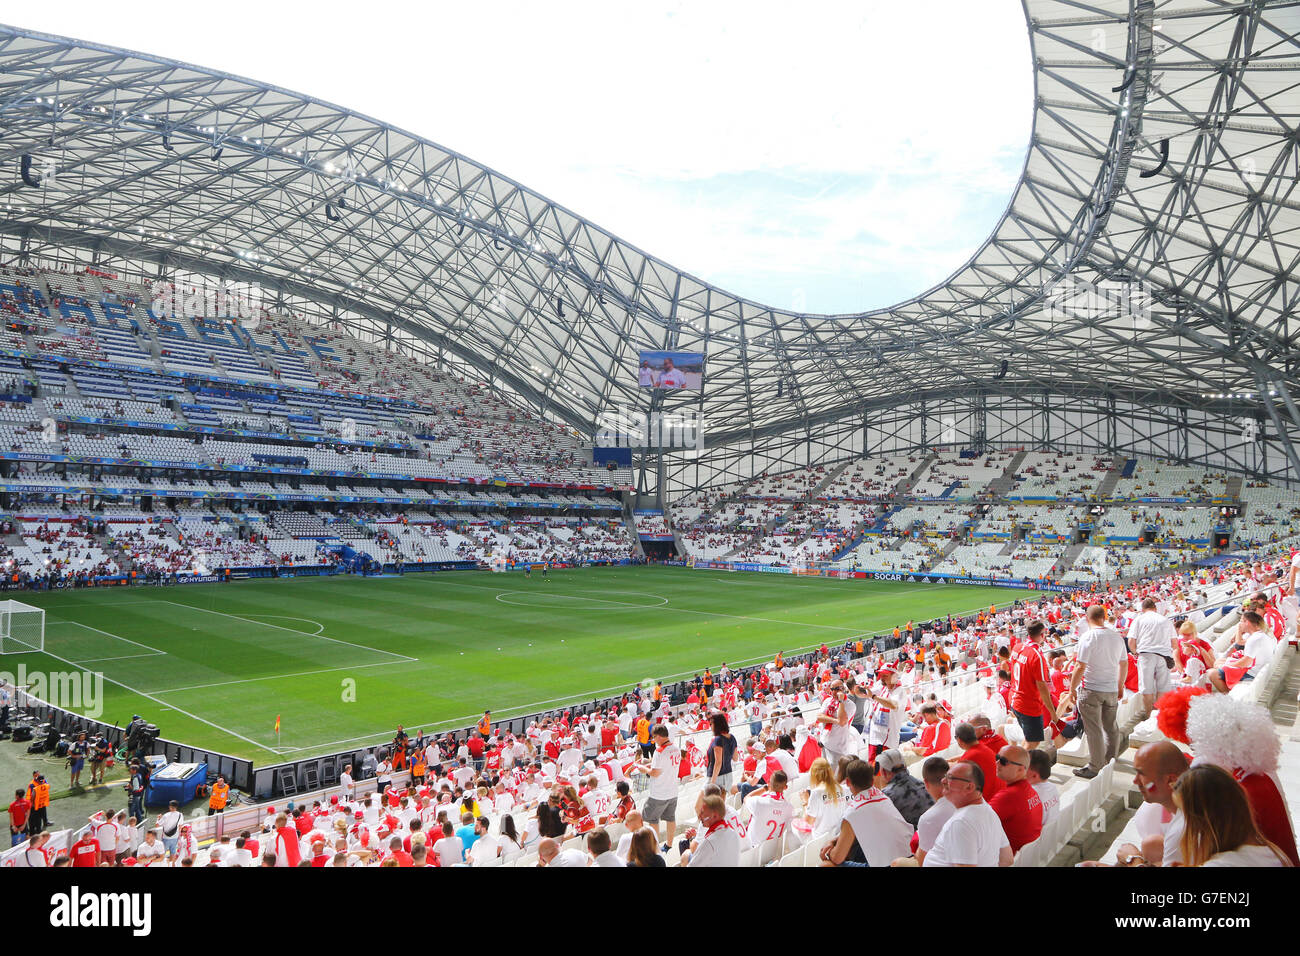 MARSEILLE, FRANCE - JUNE 21, 2016: Tribunes of Stade Velodrome before the UEFA EURO 2016 game Ukraine v Poland - Stock Image